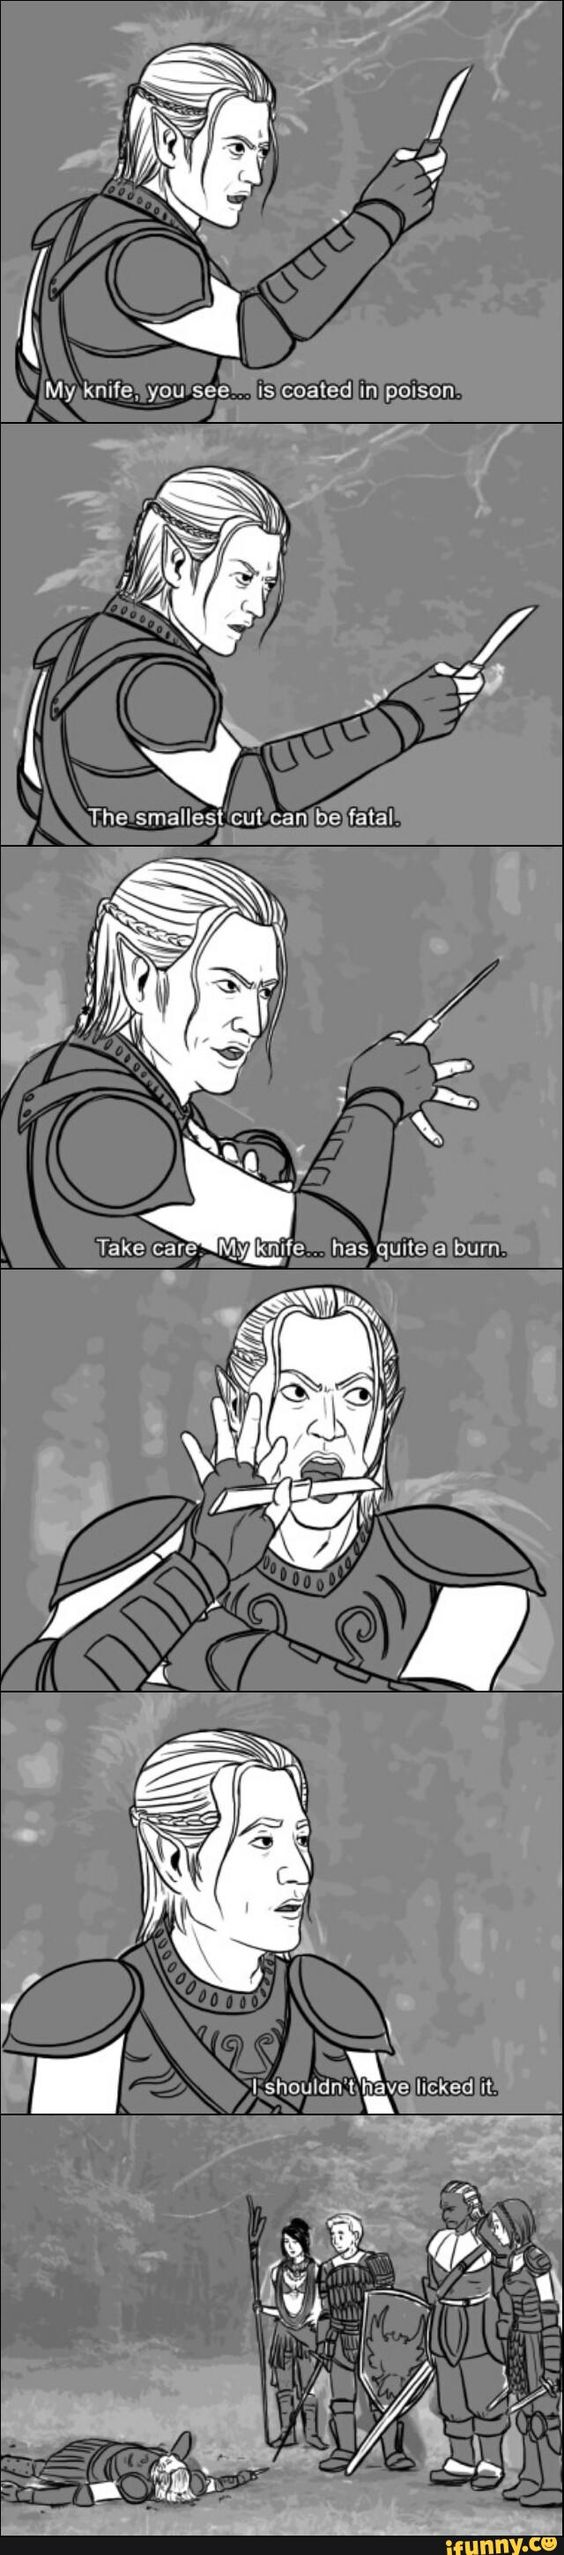 Dragon Age Origins - again, shouldn't be this funny, but it is